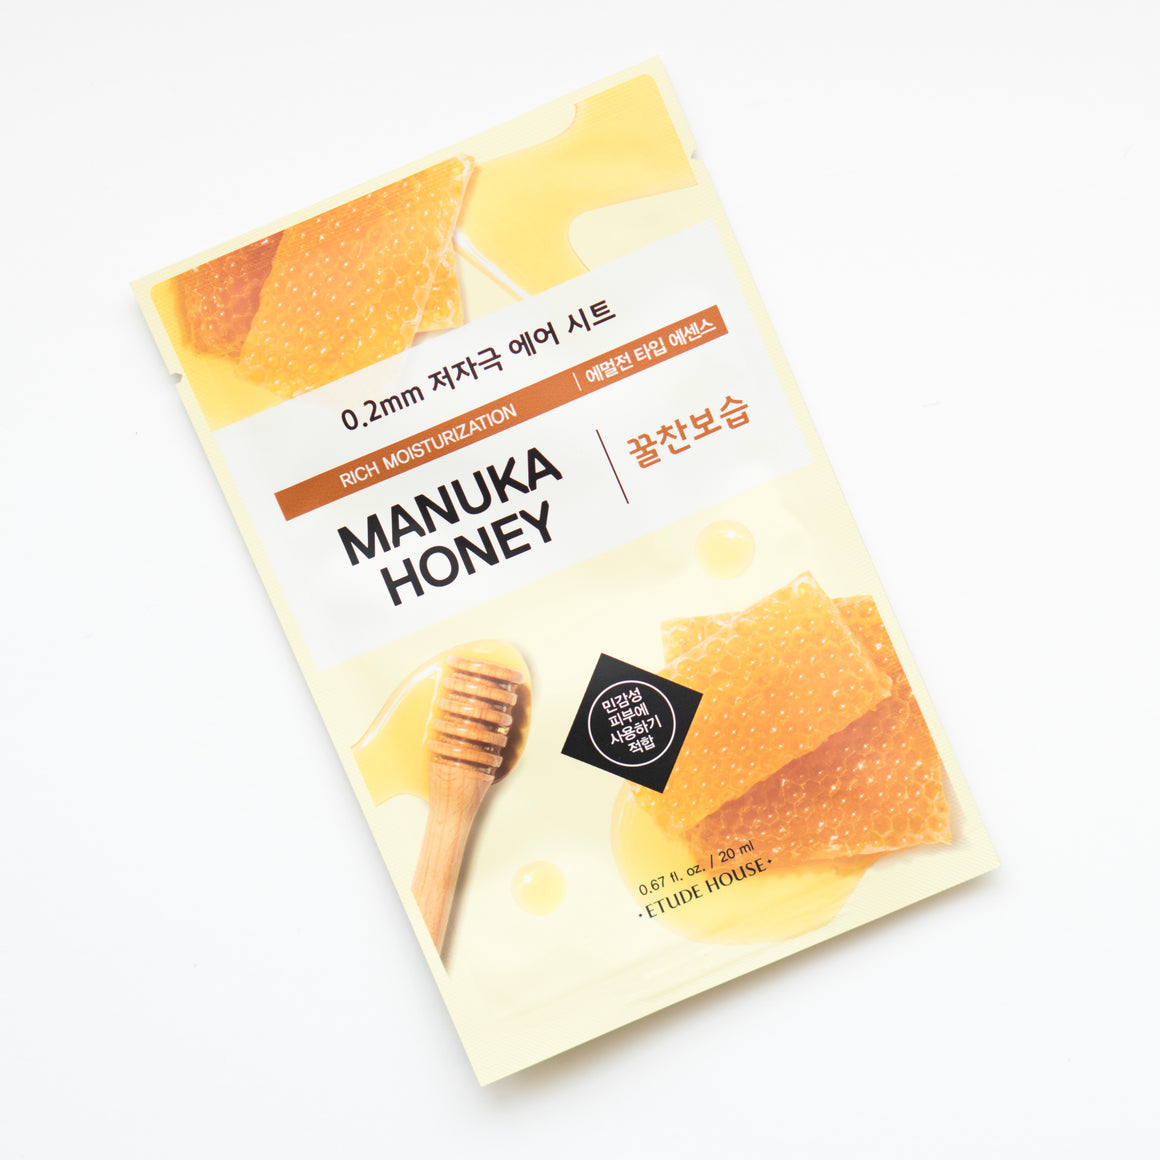 ETUDE HOUSE 0.2 Therapy Air Mask - Manuka Honey